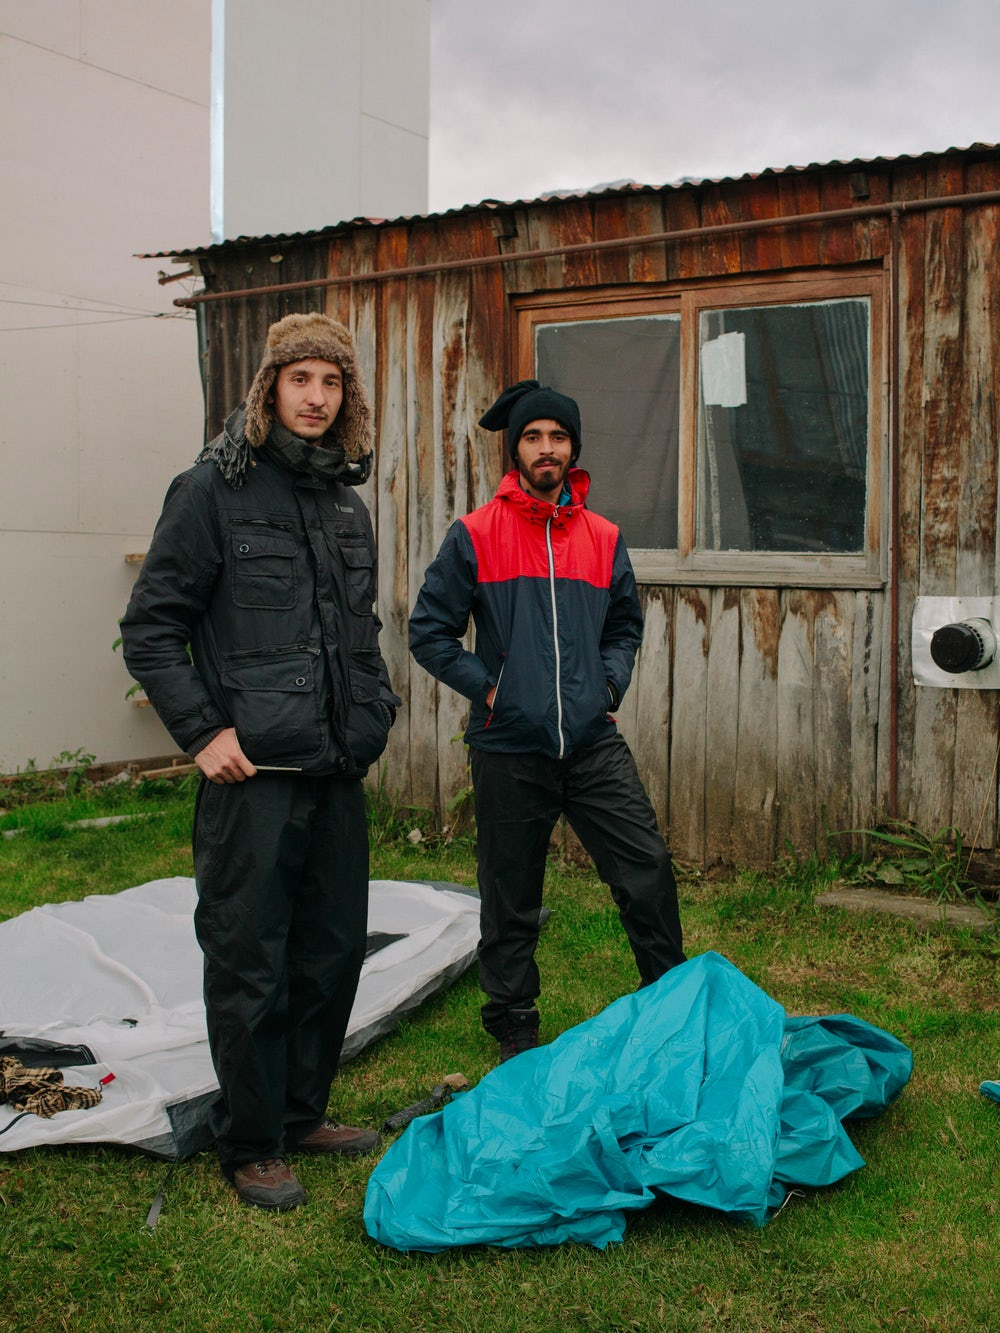 Ivan and Joao, two backpackers from Brazil setting up a tent in a private garden. Due to the cost of accommodations in Ushuaia, many turn to alternative ways of traveling.